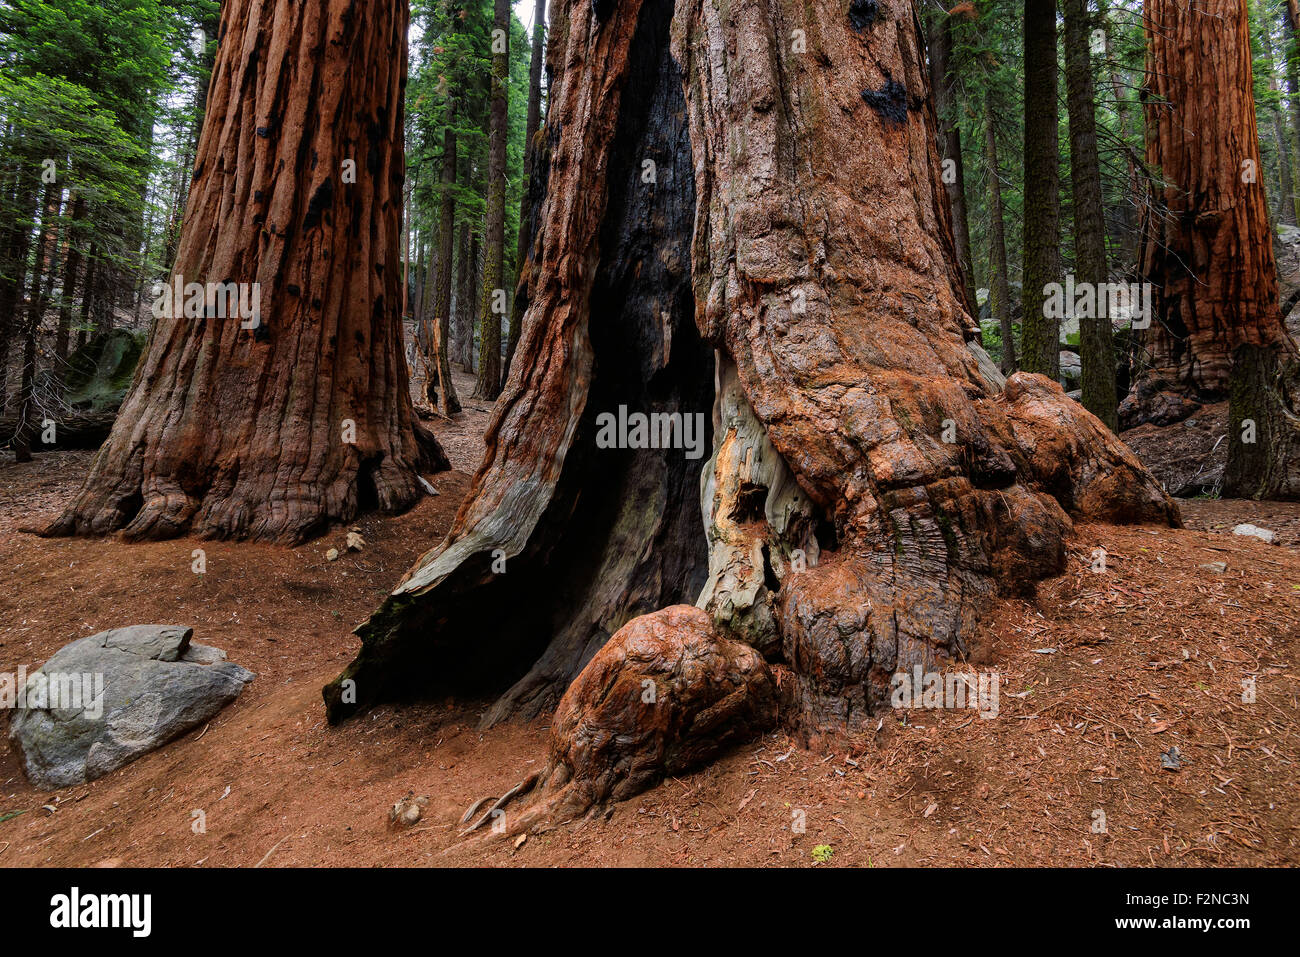 Giant Sequoias Forest in California Sierra Nevada Mountains, United States. - Stock Image